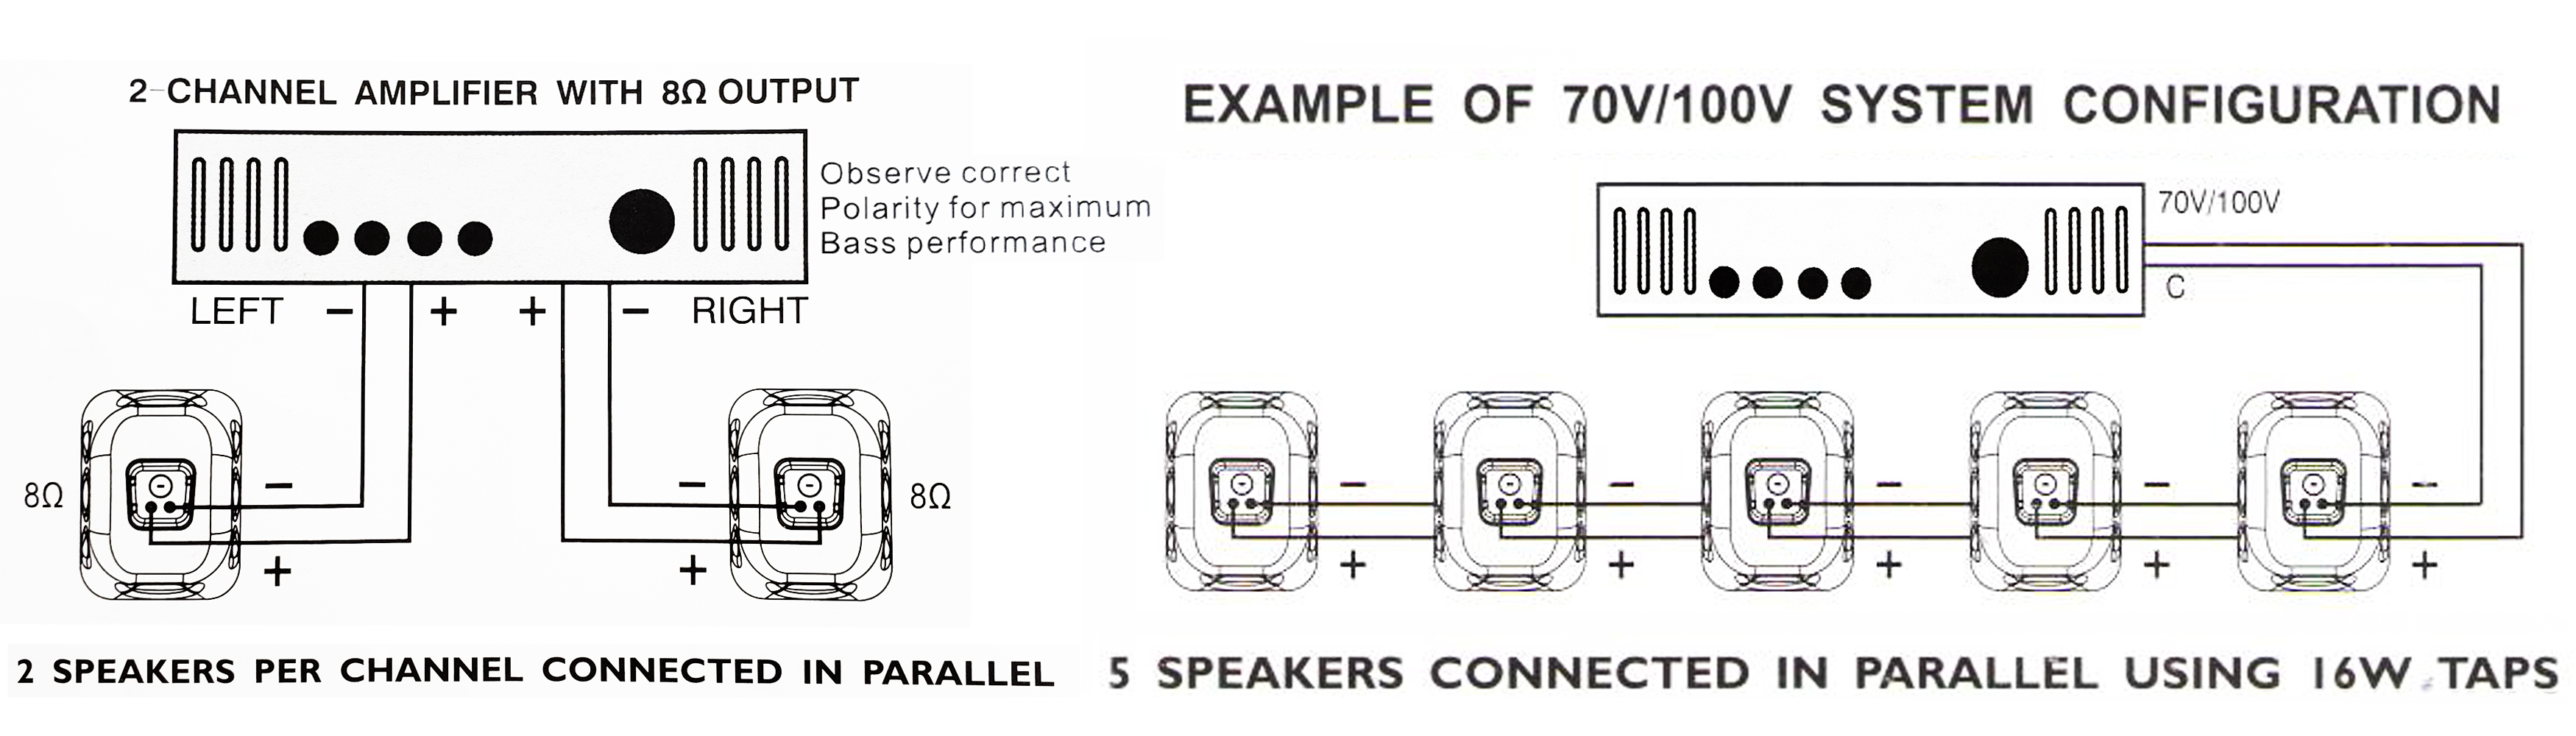 What are some of the major differences between 70V/100V and 8 ohm speaker  systems?